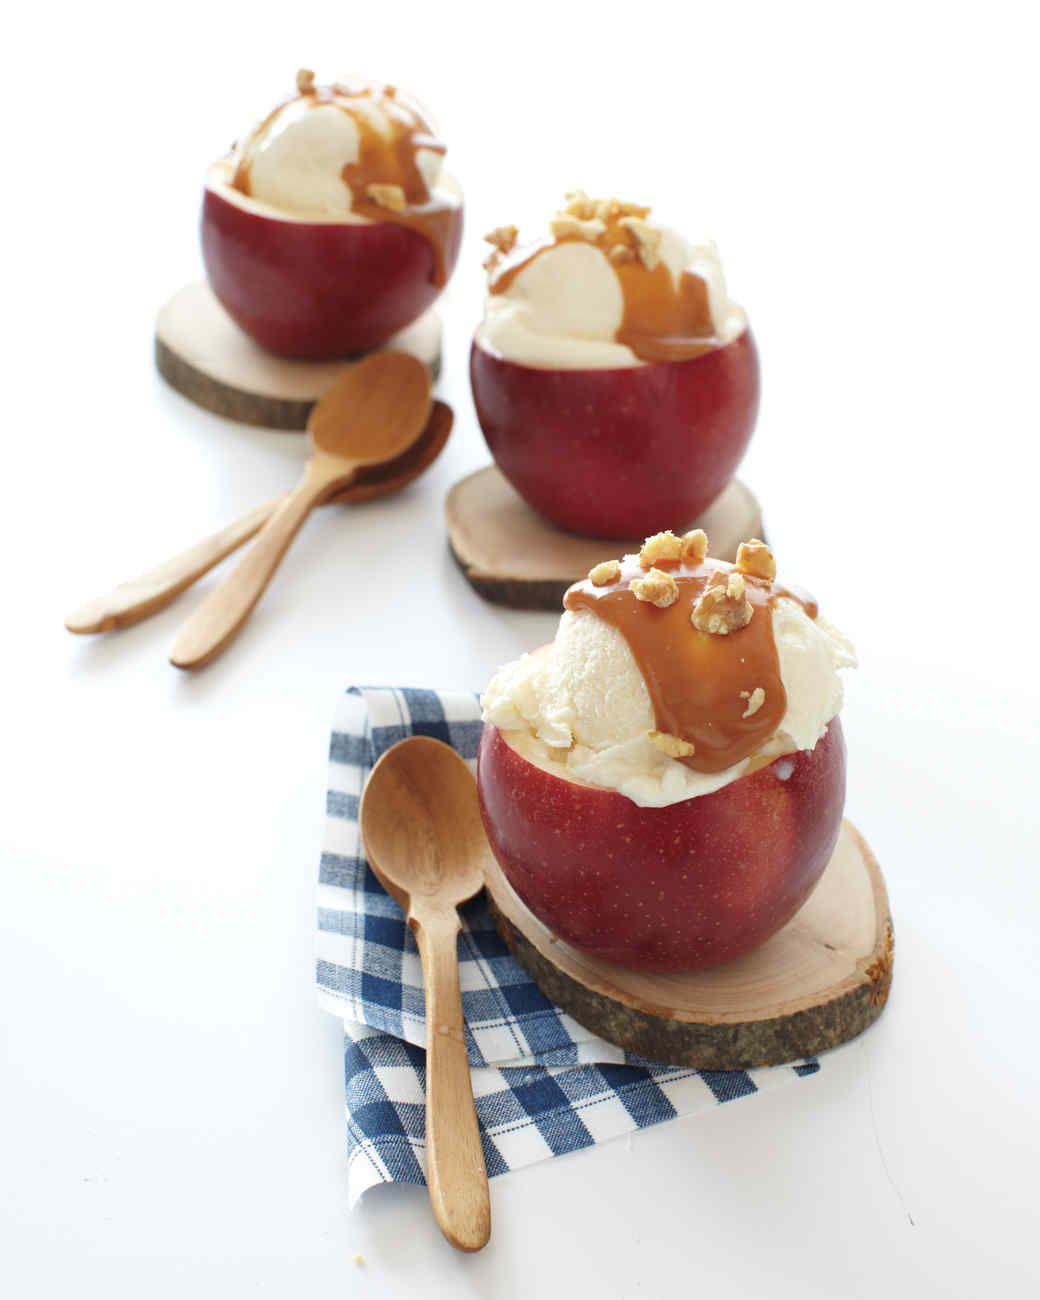 apple-sundae-1011mld107722.jpg